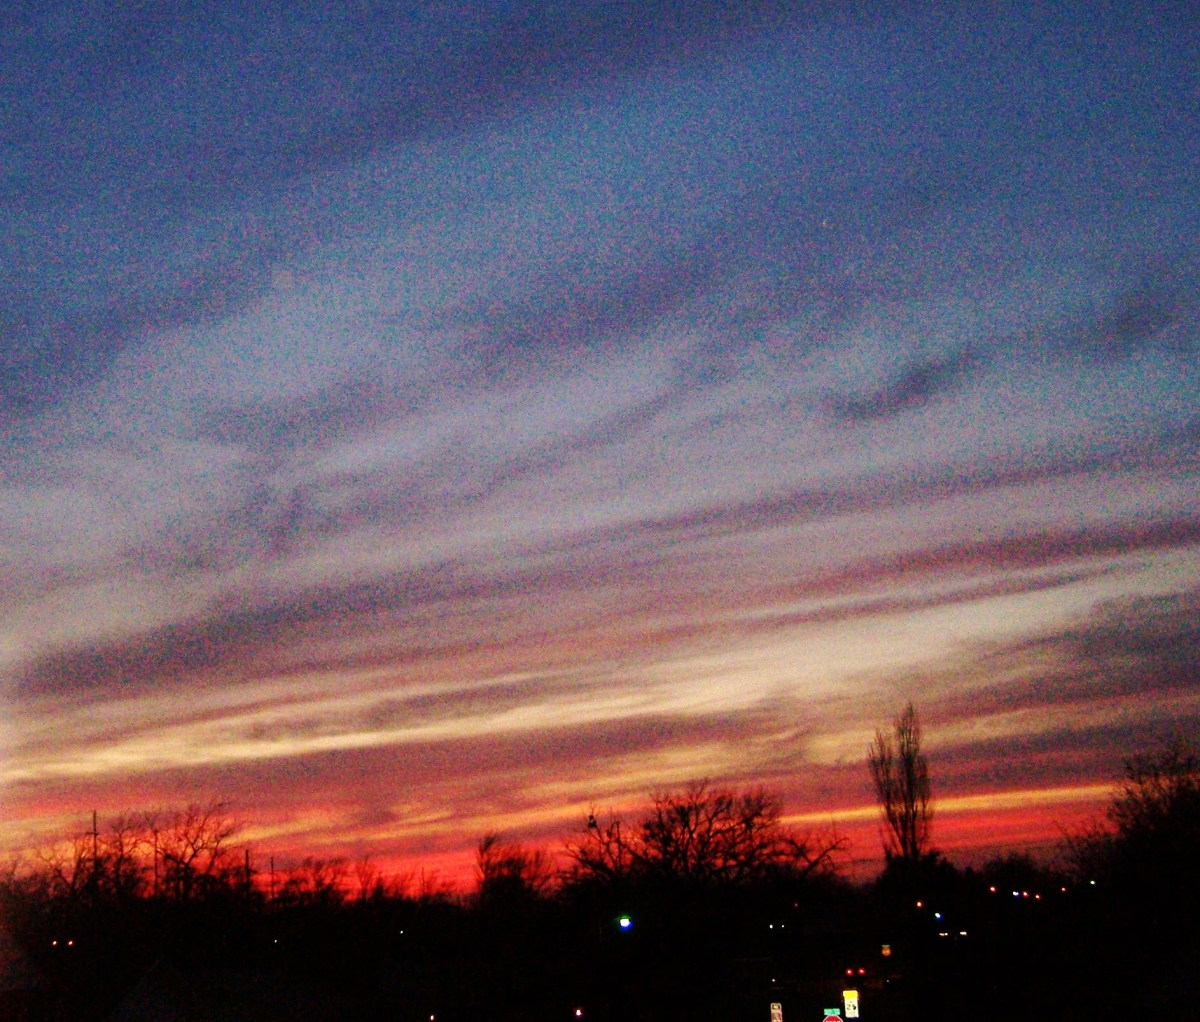 The masterpiece of a sky...